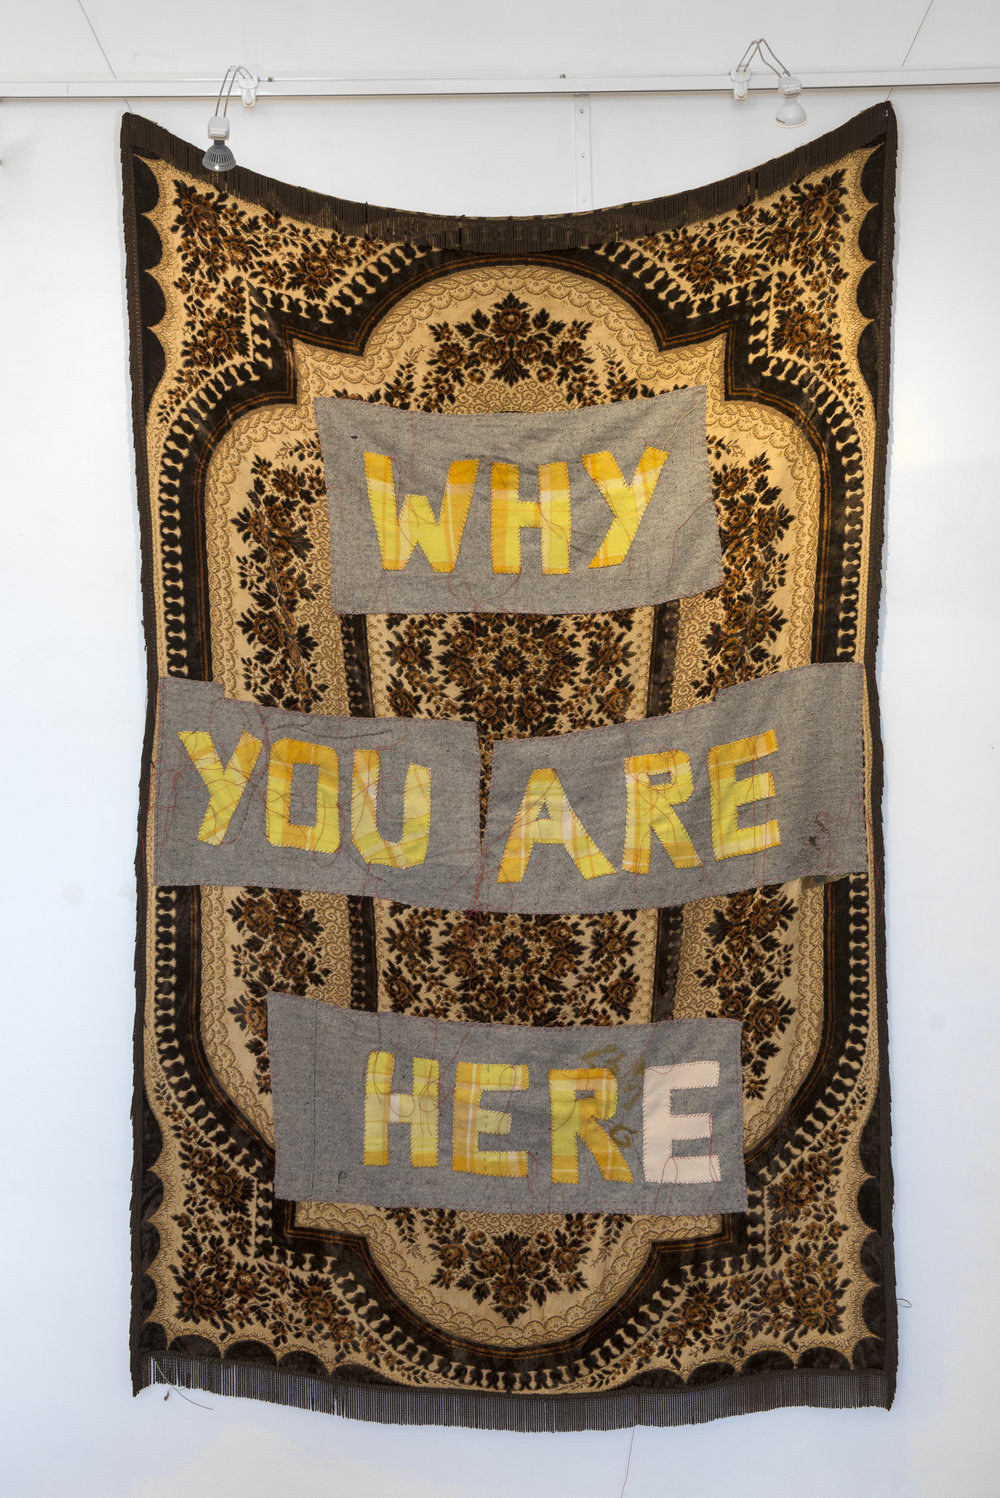 29. Olga Cironis,  Why are you here? , 2018, recycled grey and yellow woollen blanket, red thread and recycled domestic clot, 200 x 130 cm, $1,700 Photograph by Eva Fernandez